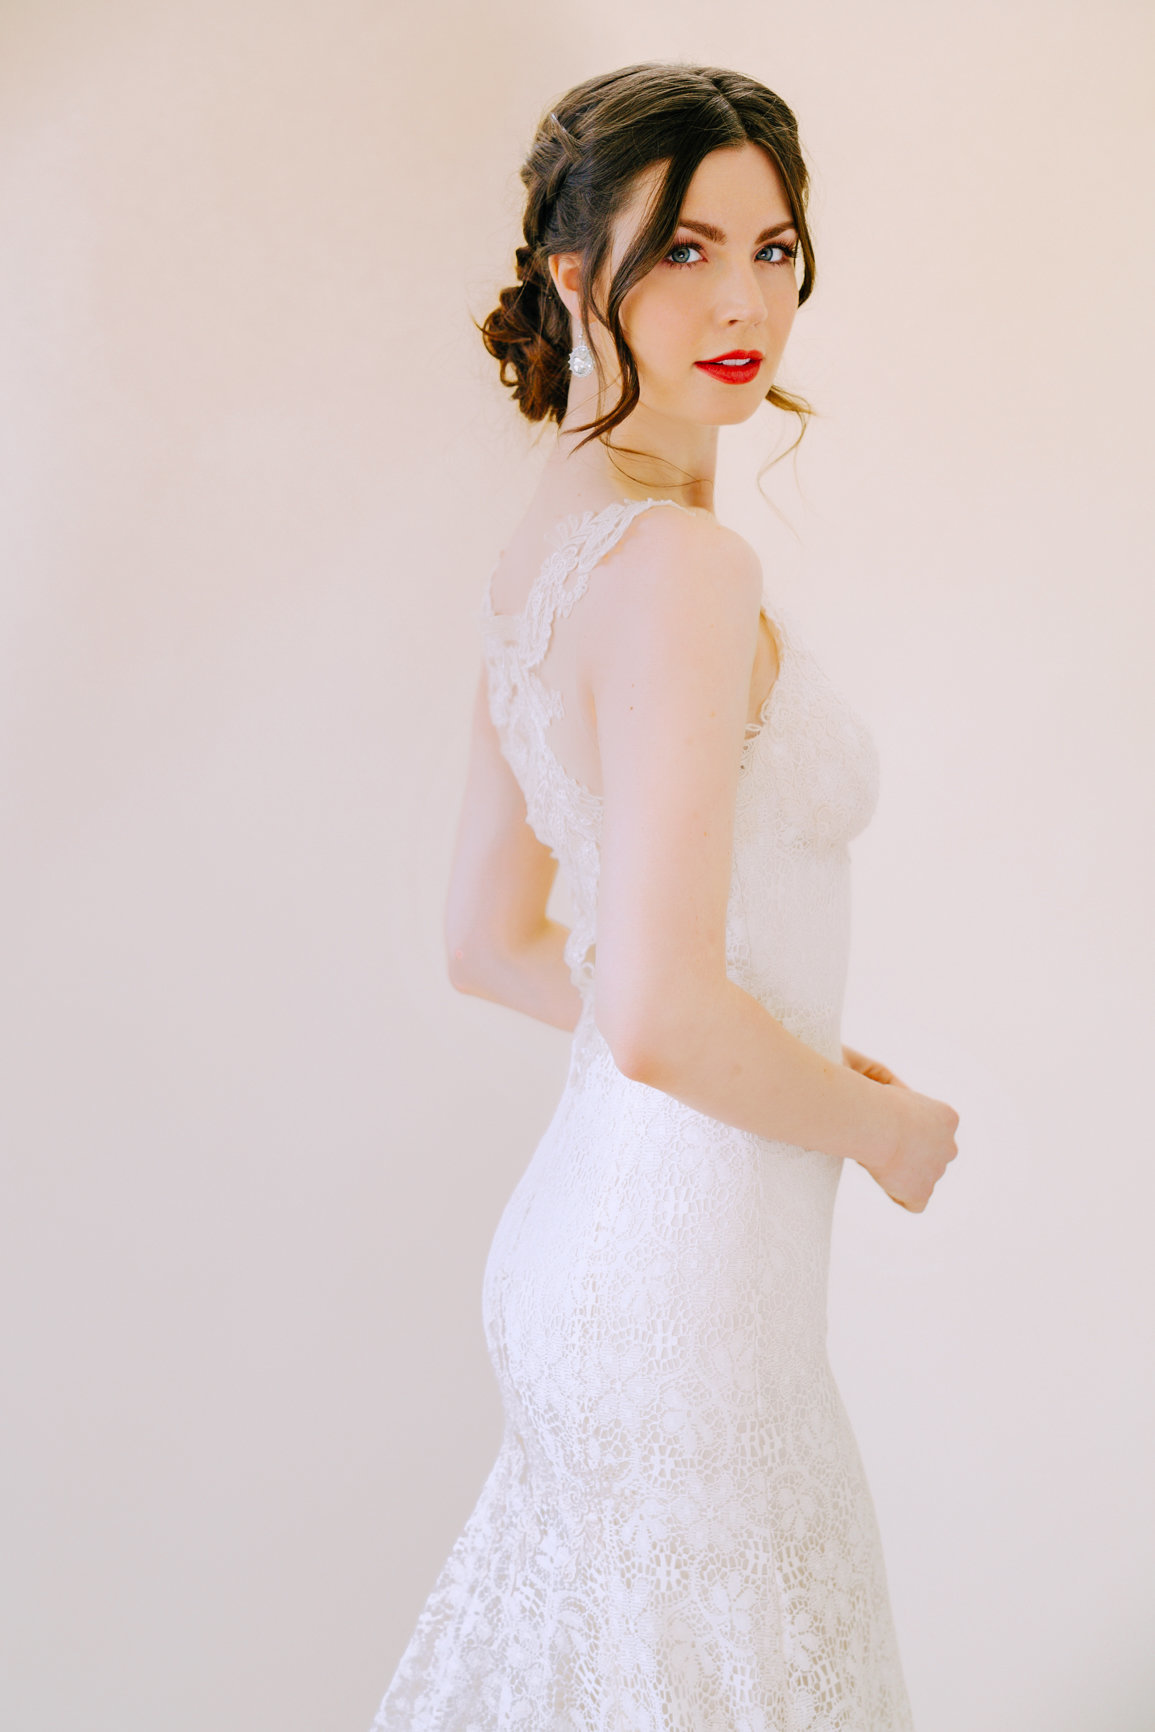 nikki-closser-photography-bridal-5